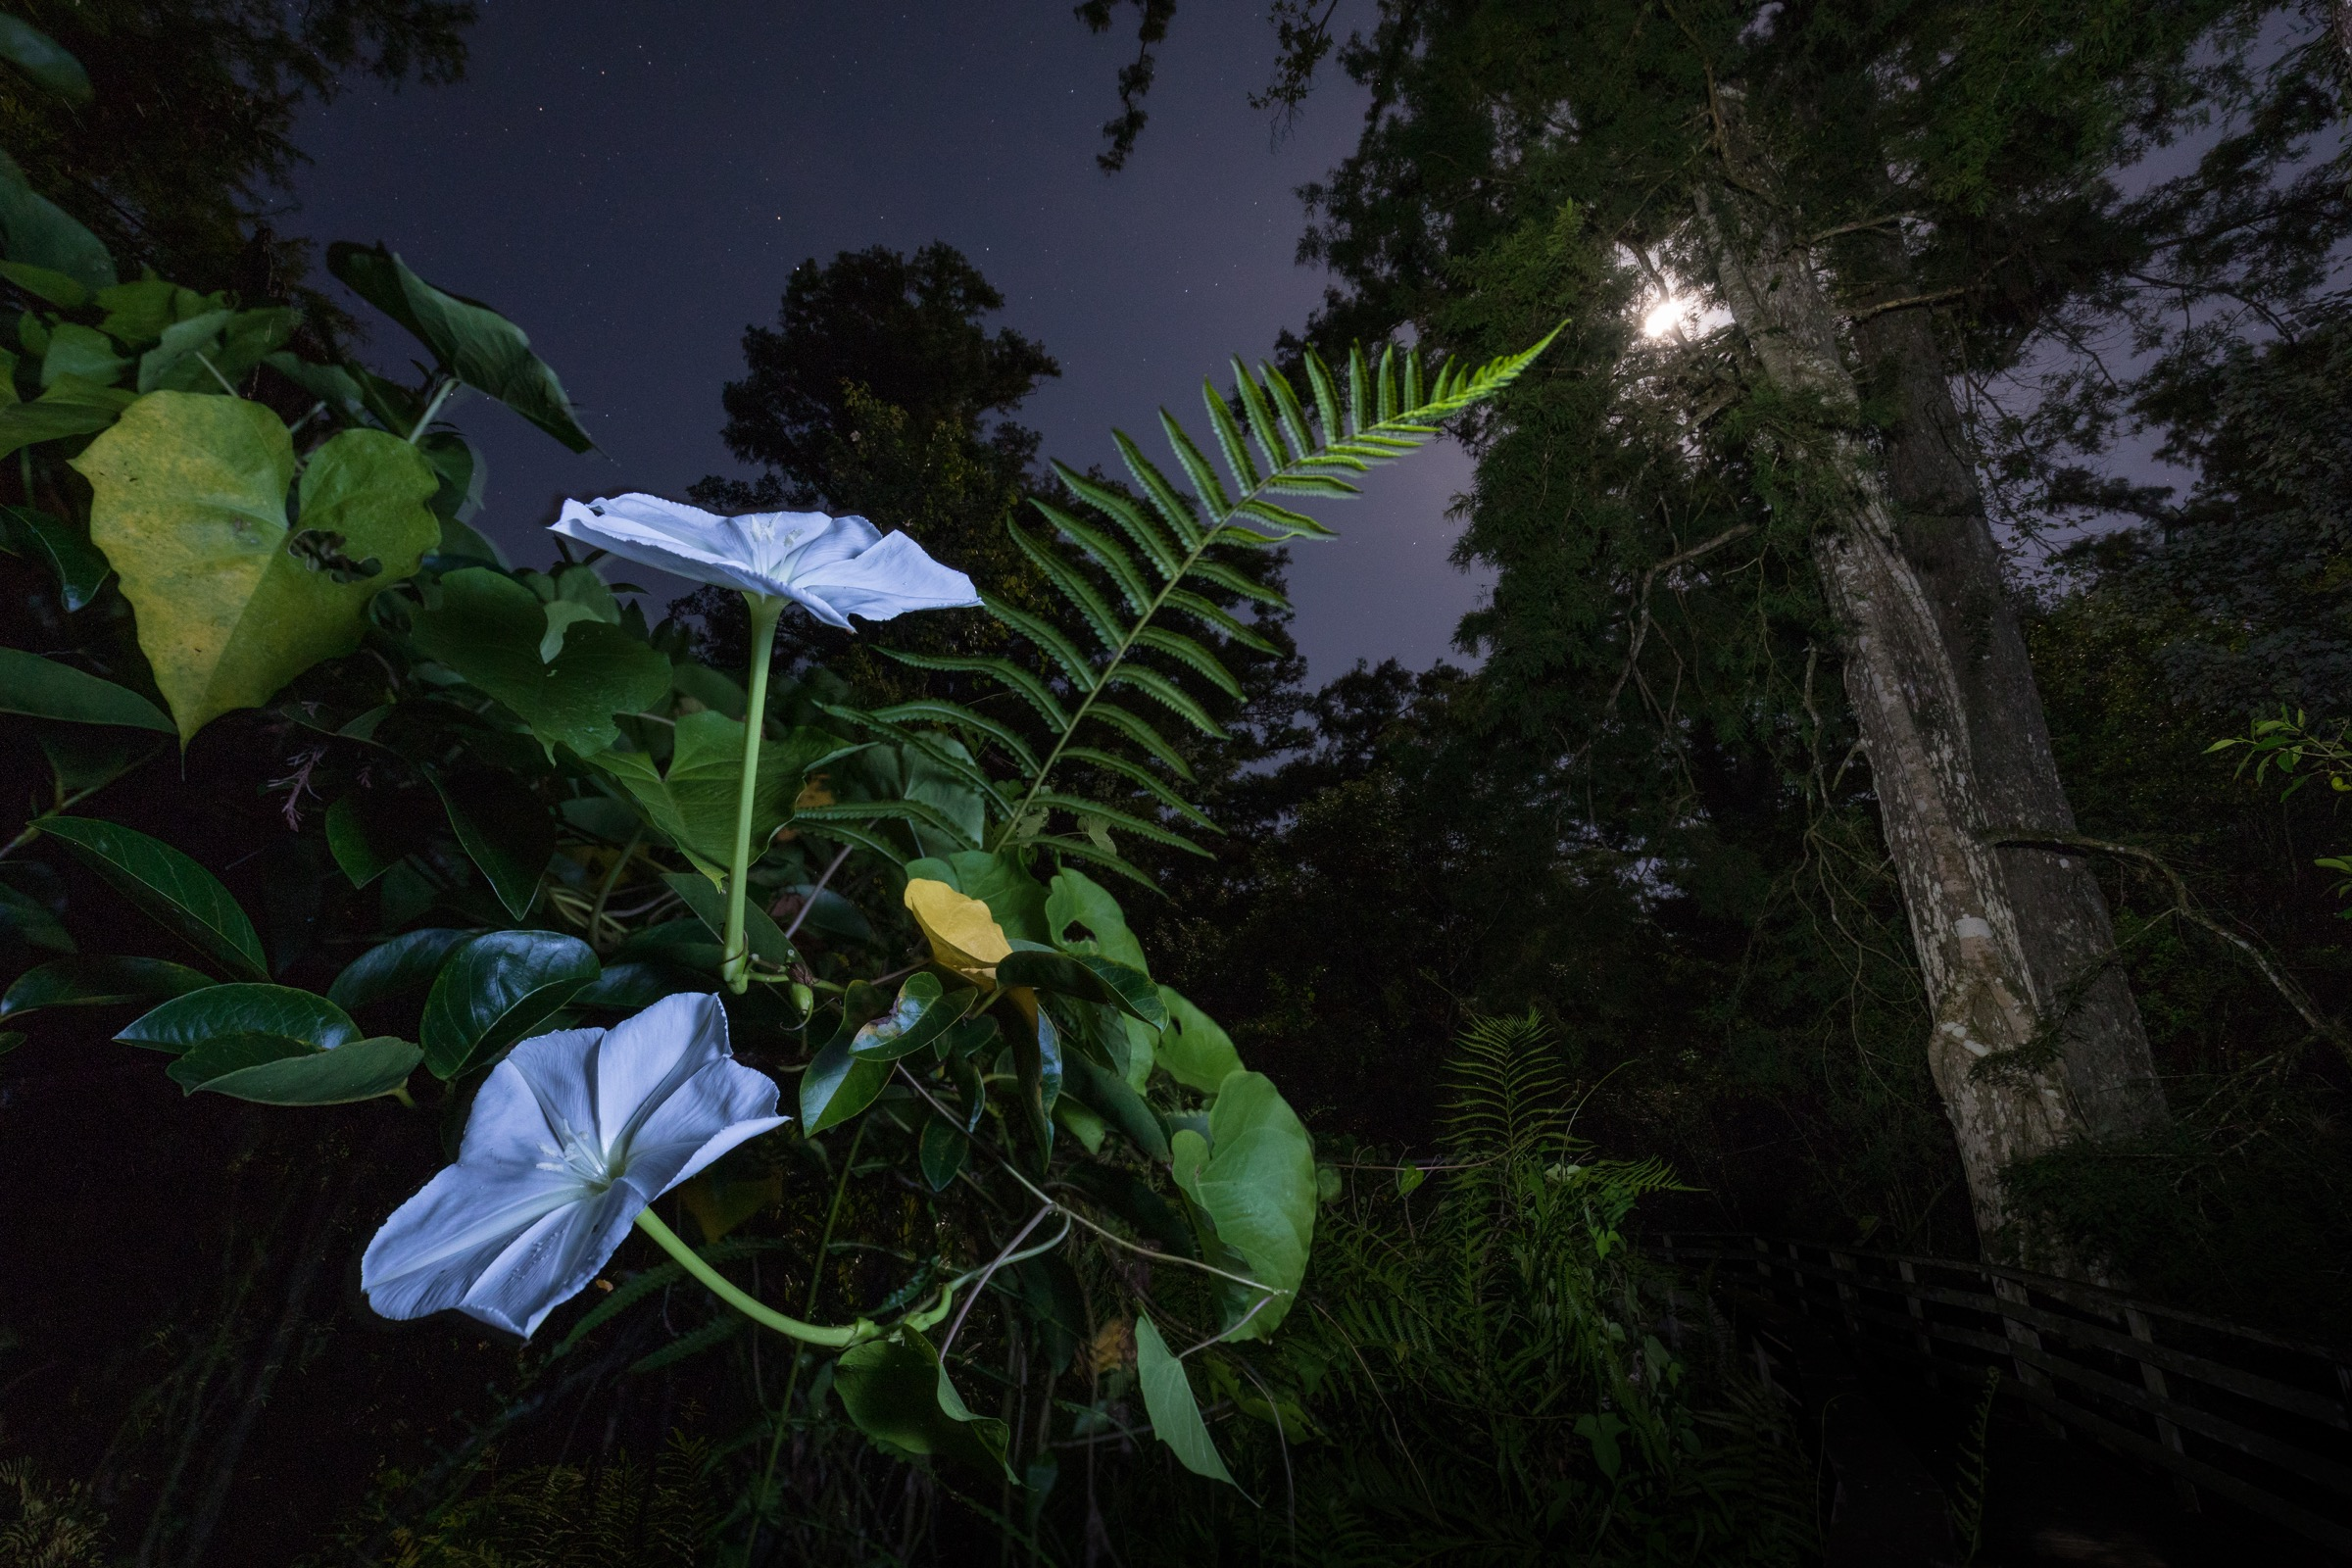 The moonflower thrives in the subtropical climate of the Everglades and opens at night to attract large moths, like the giant sphinx moth, that can probe the flower's long nectar tube. Photograph by Mac Stone